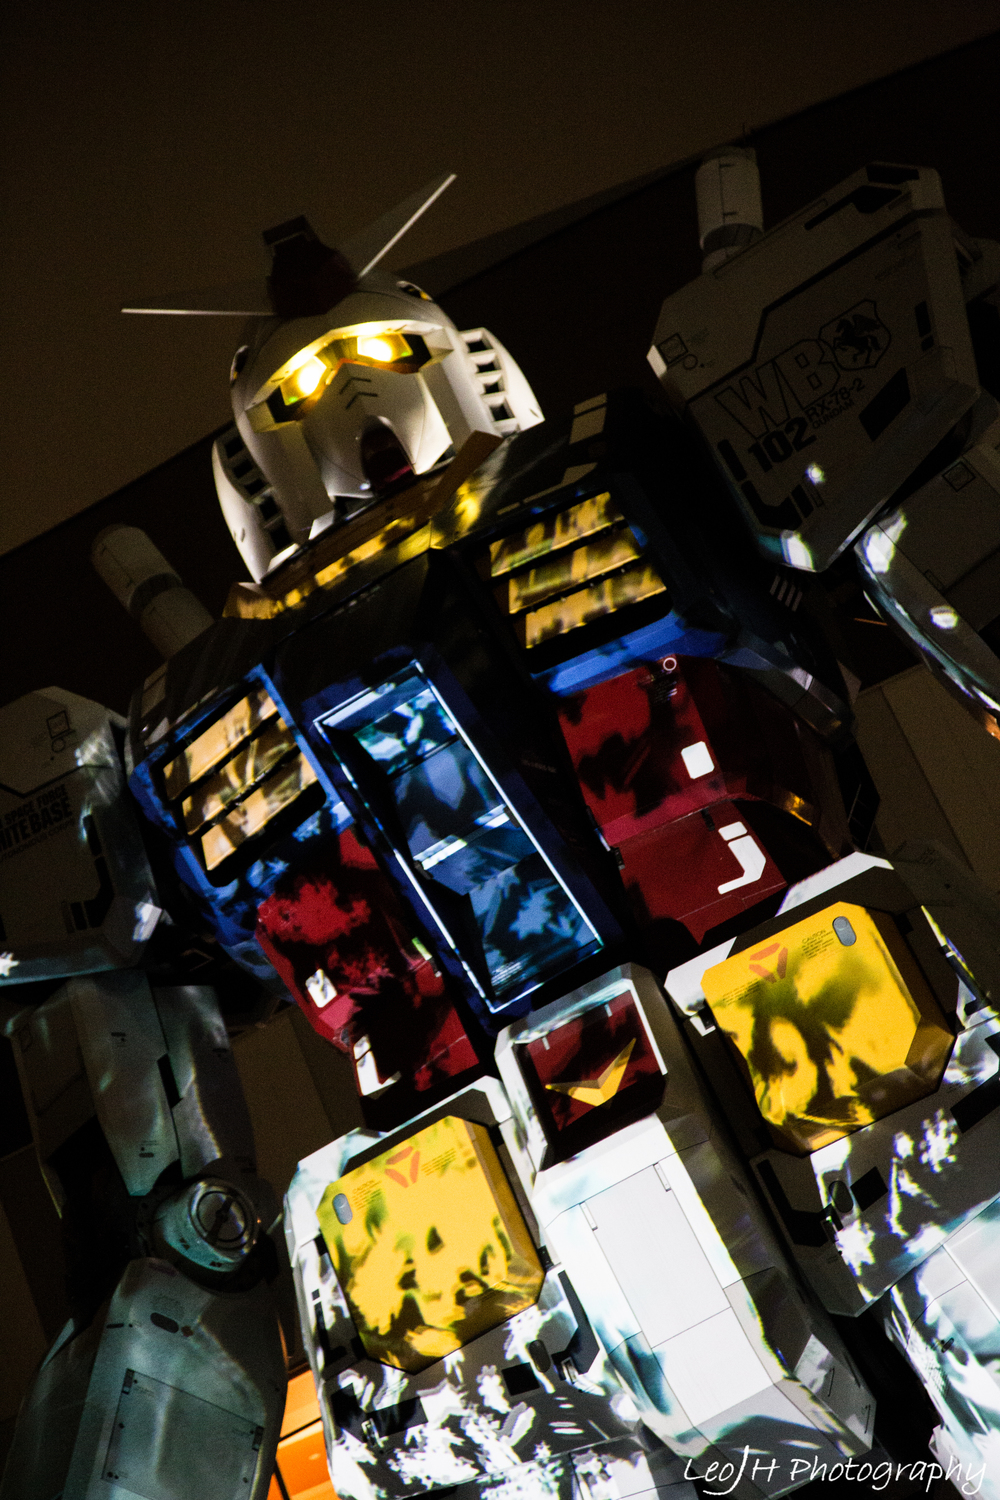 Gundam model during the light show. Some of the light patterns were really intricate